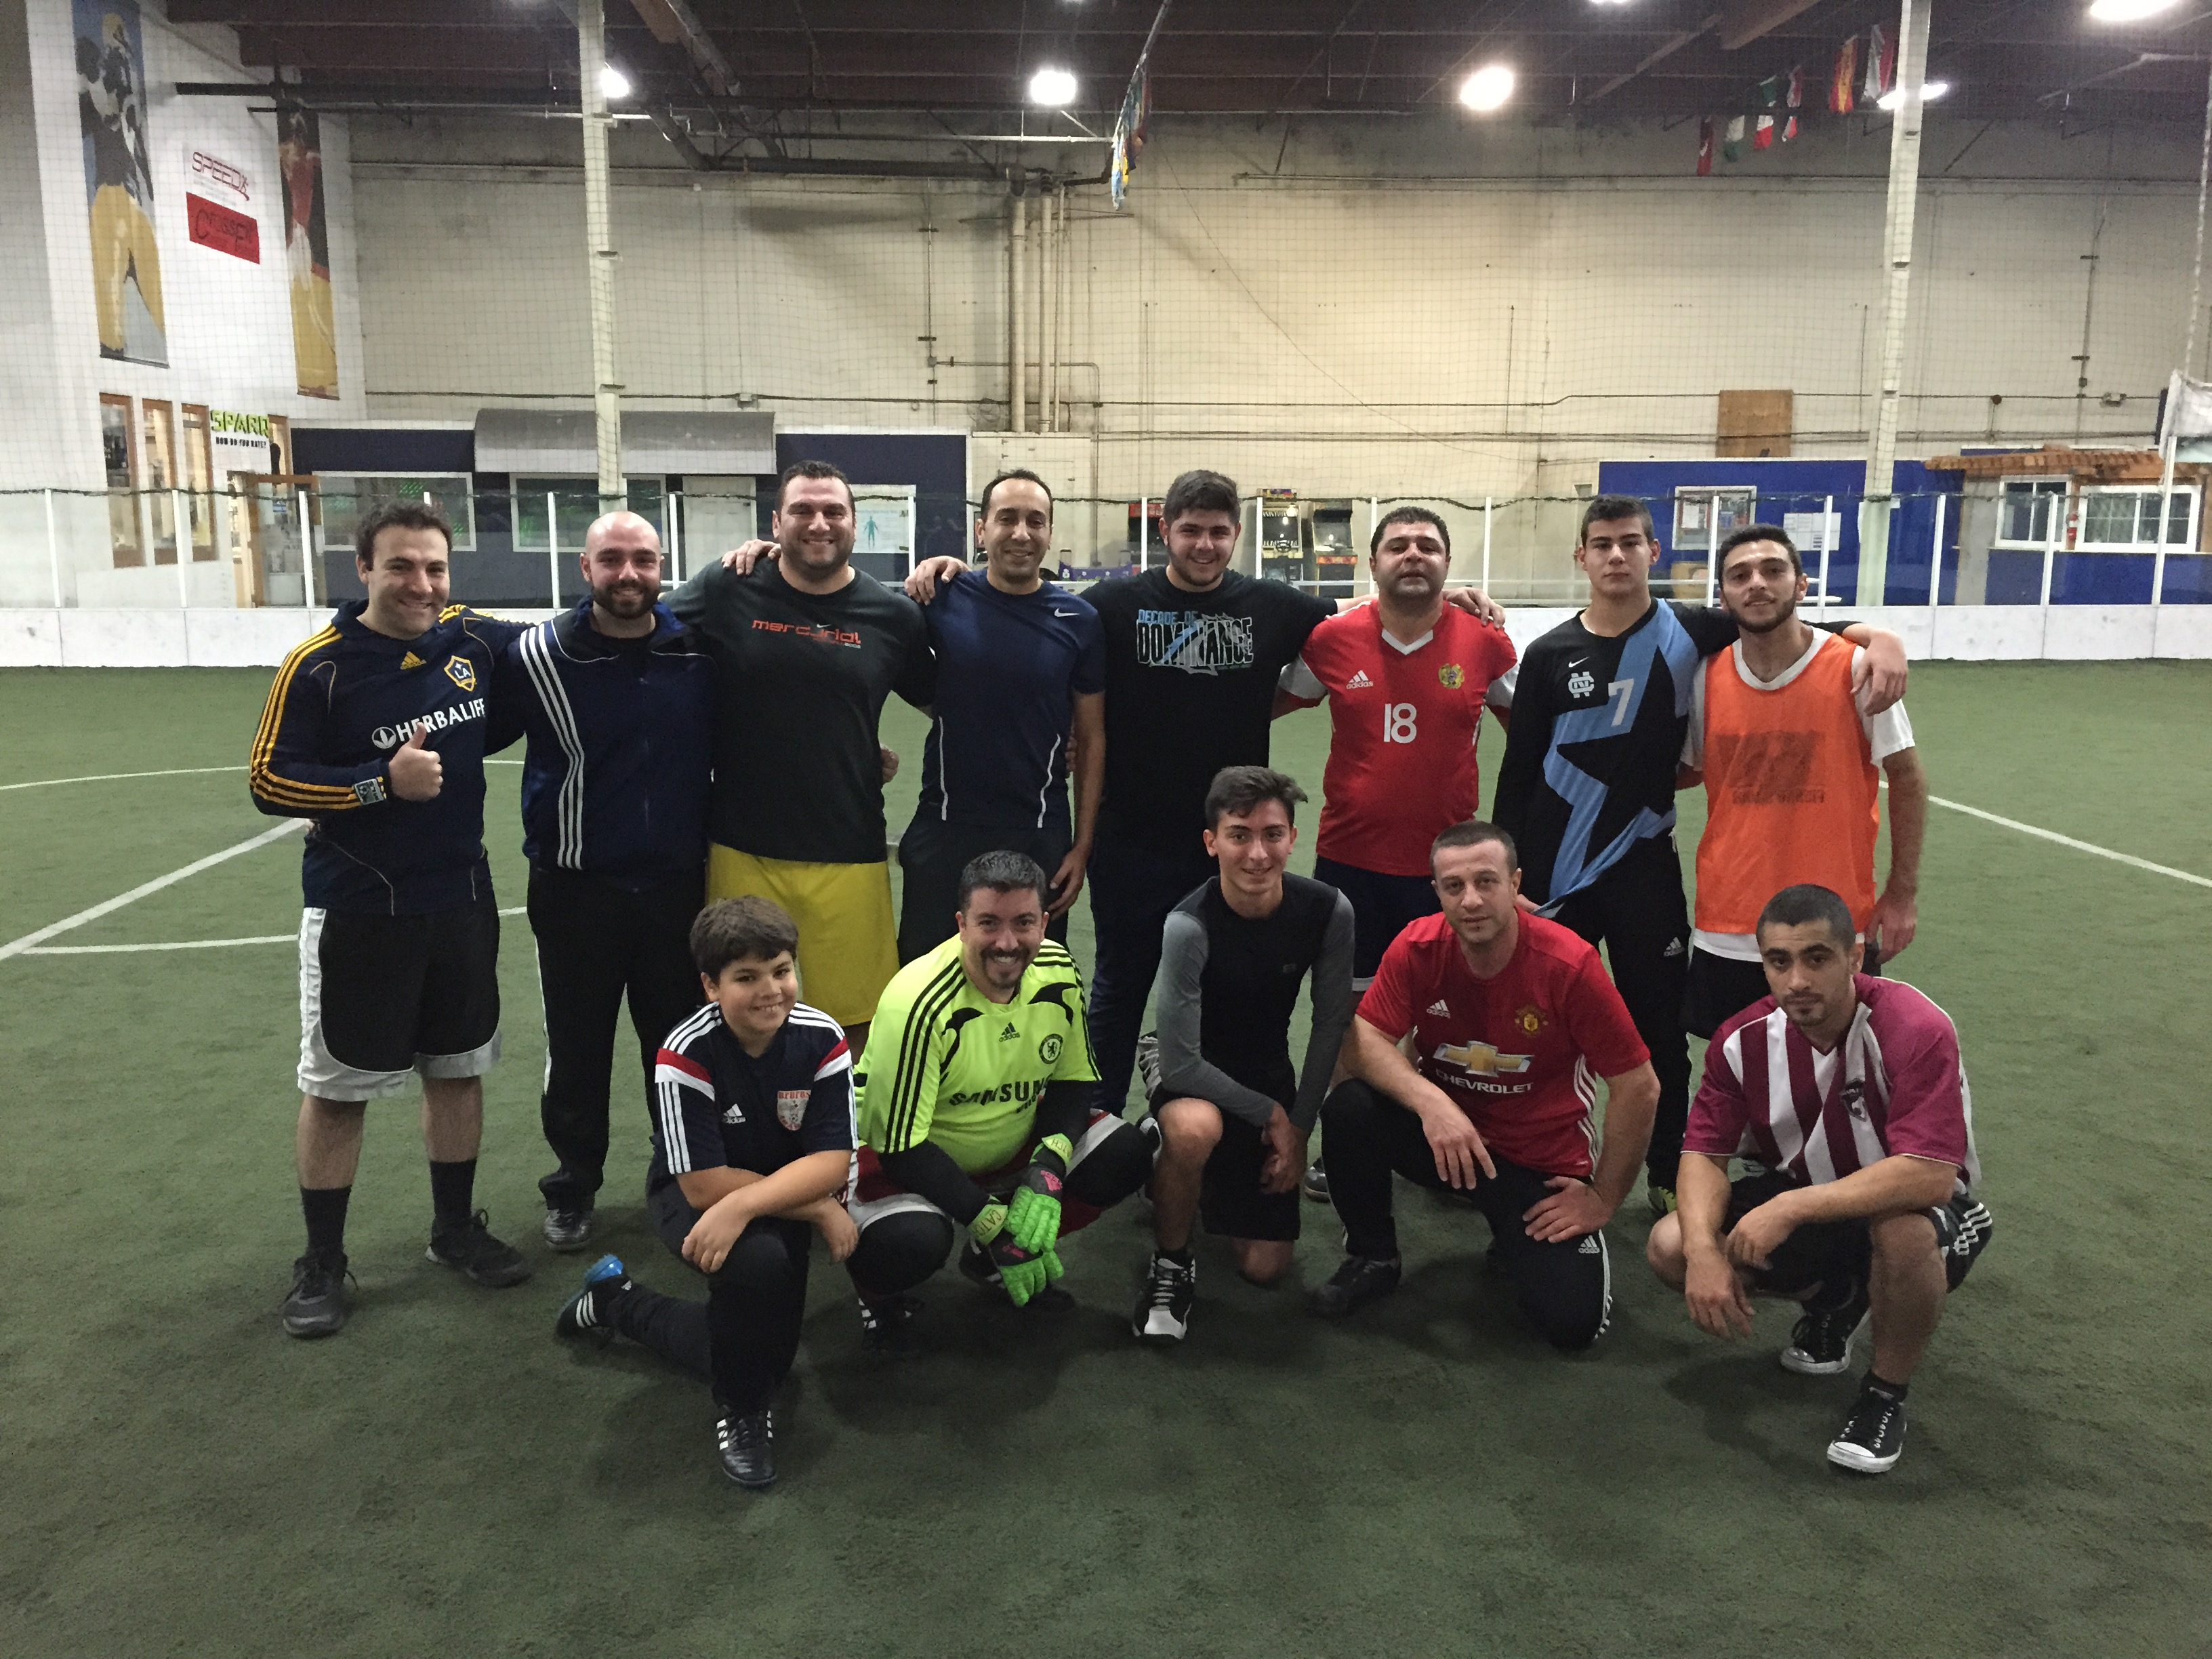 FAFC INDOOR NOV 27 2016